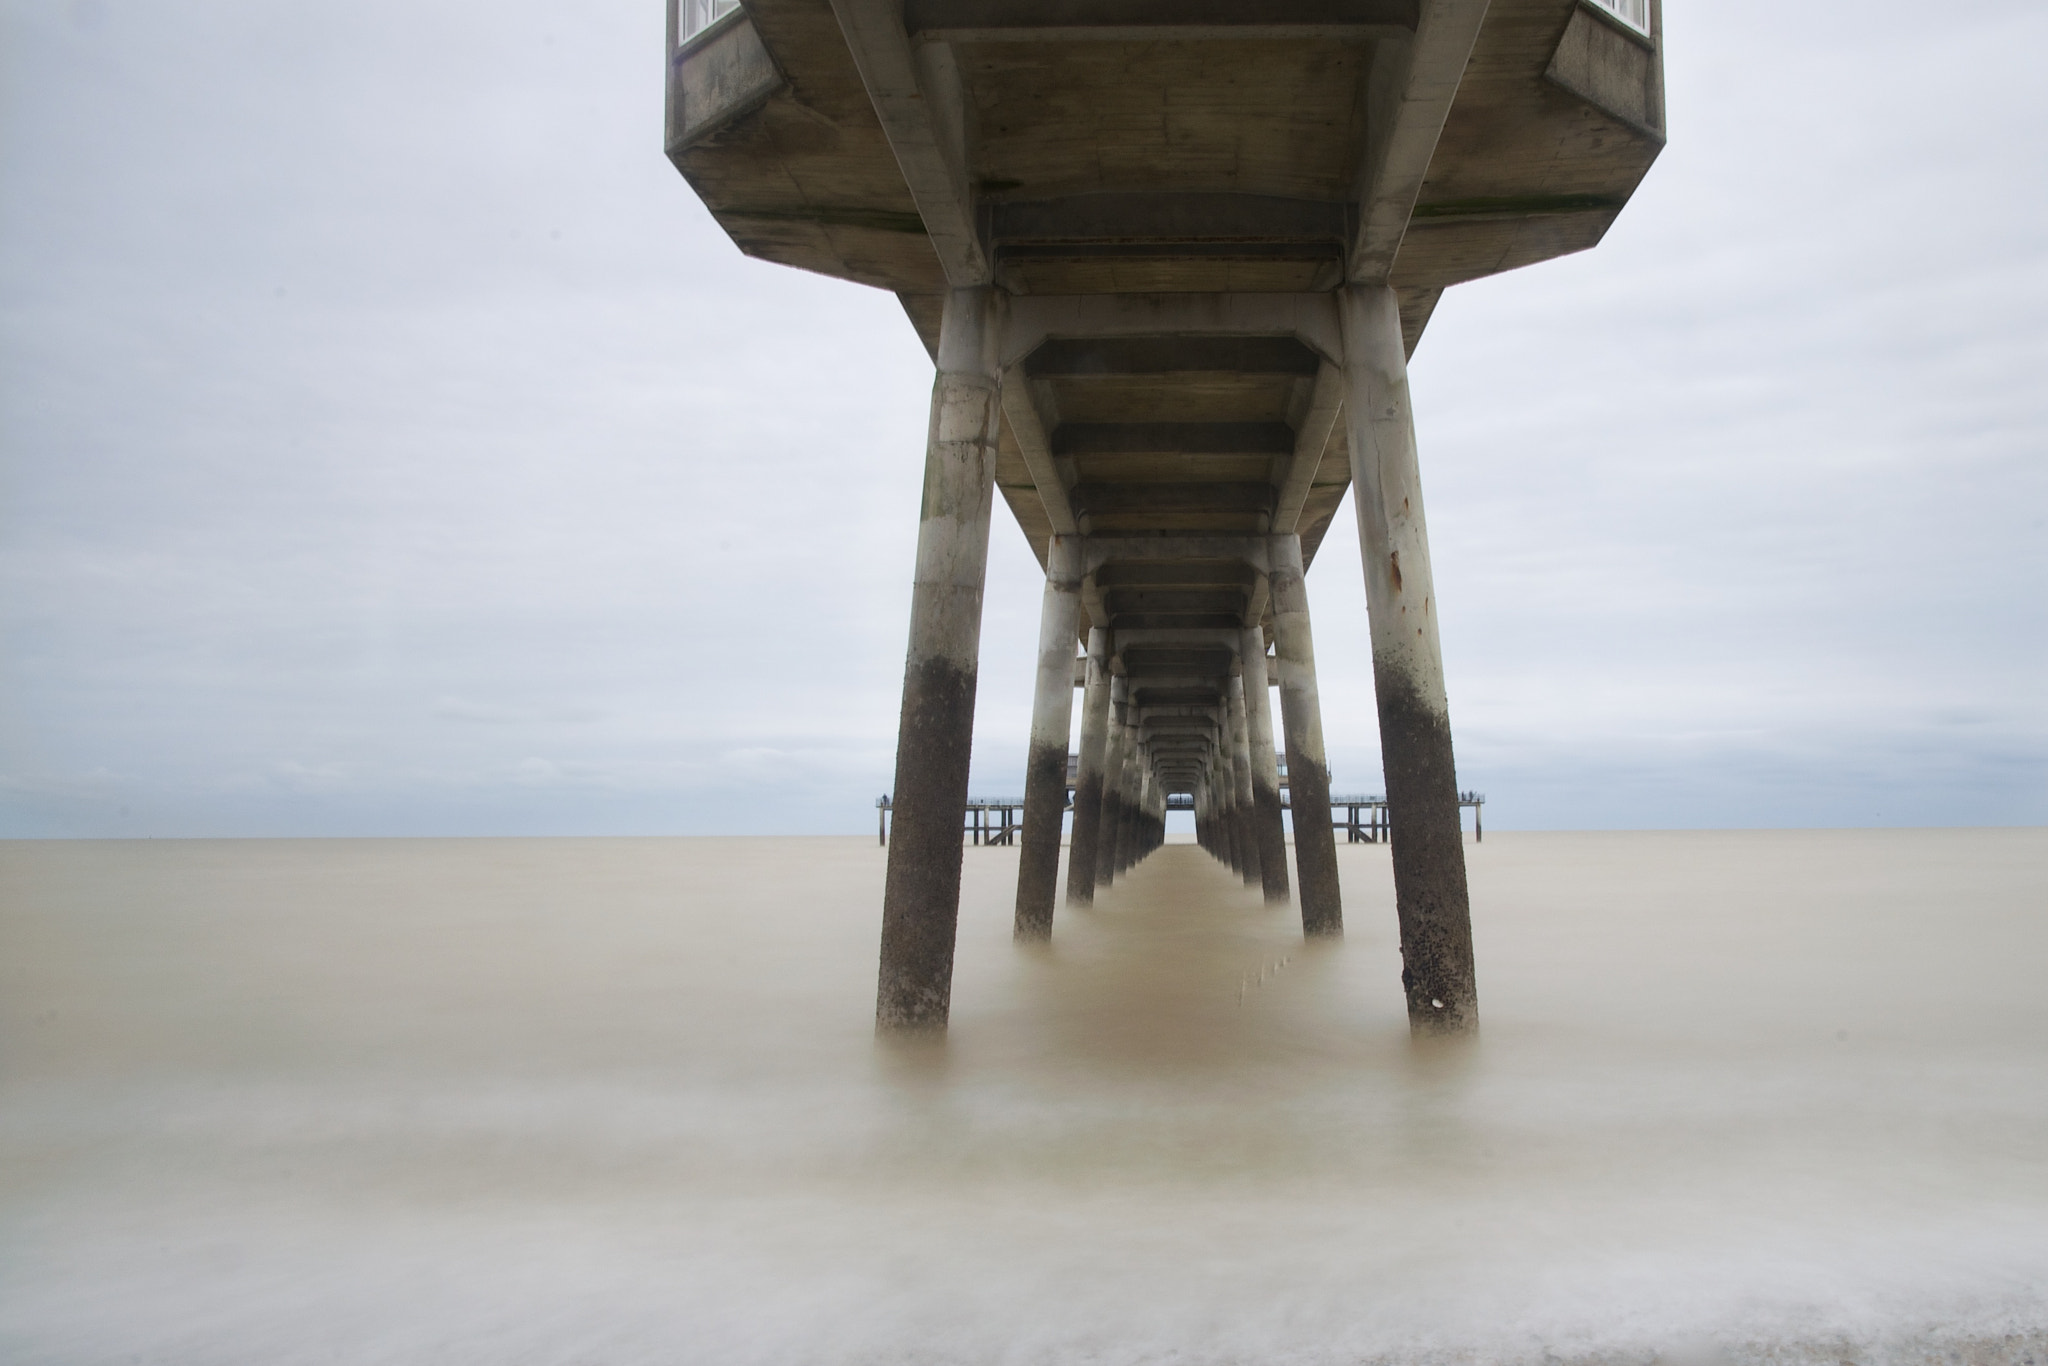 Photograph Deal Pier, Kent 3 by graham mitchell on 500px